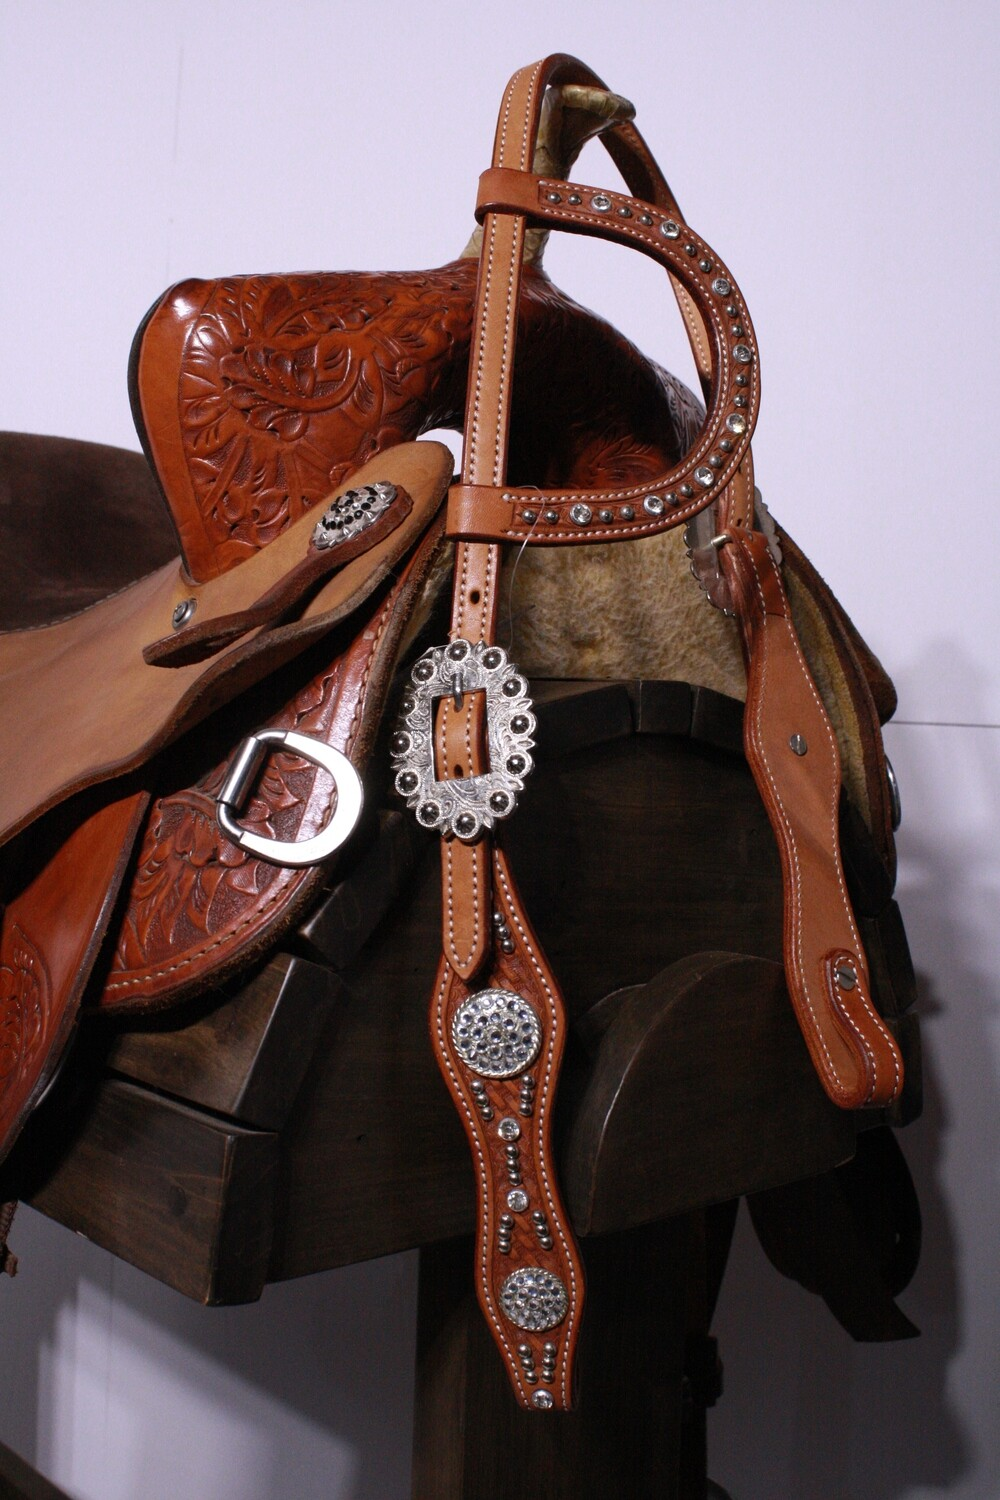 Umber Tack One Ear HS Tan With Beads  and Gems